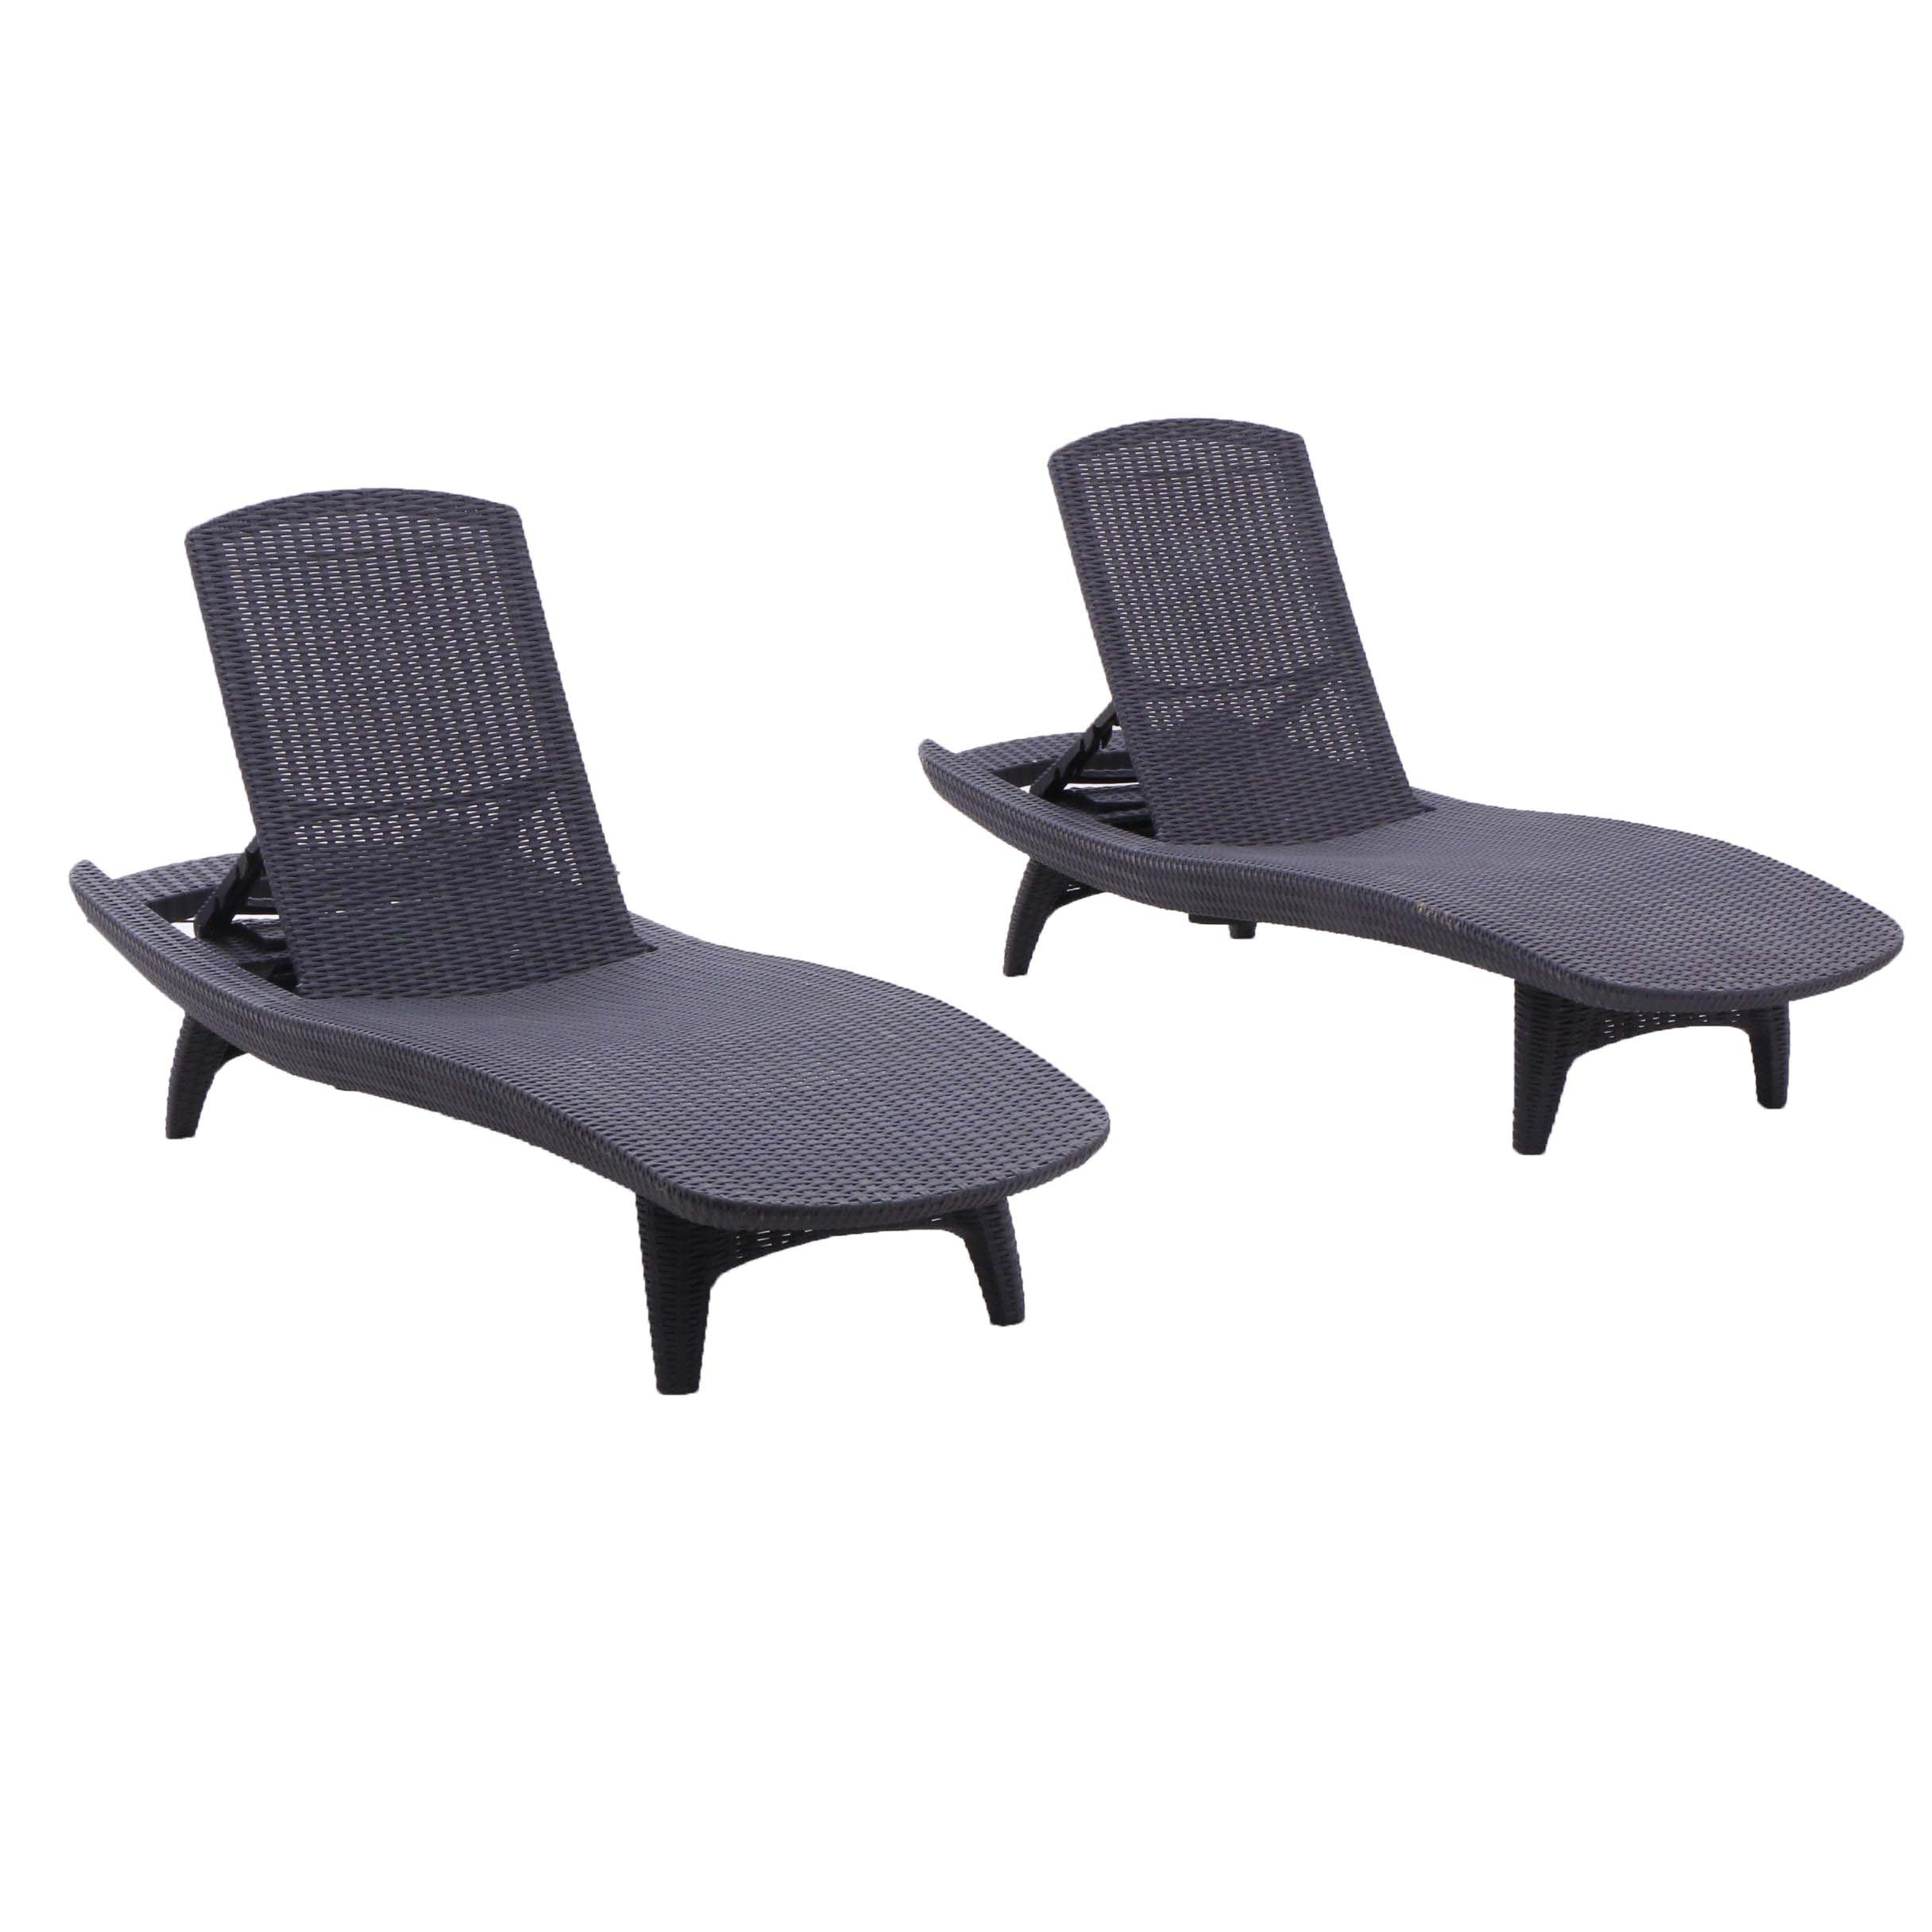 Patio Lounge Chairs in Black